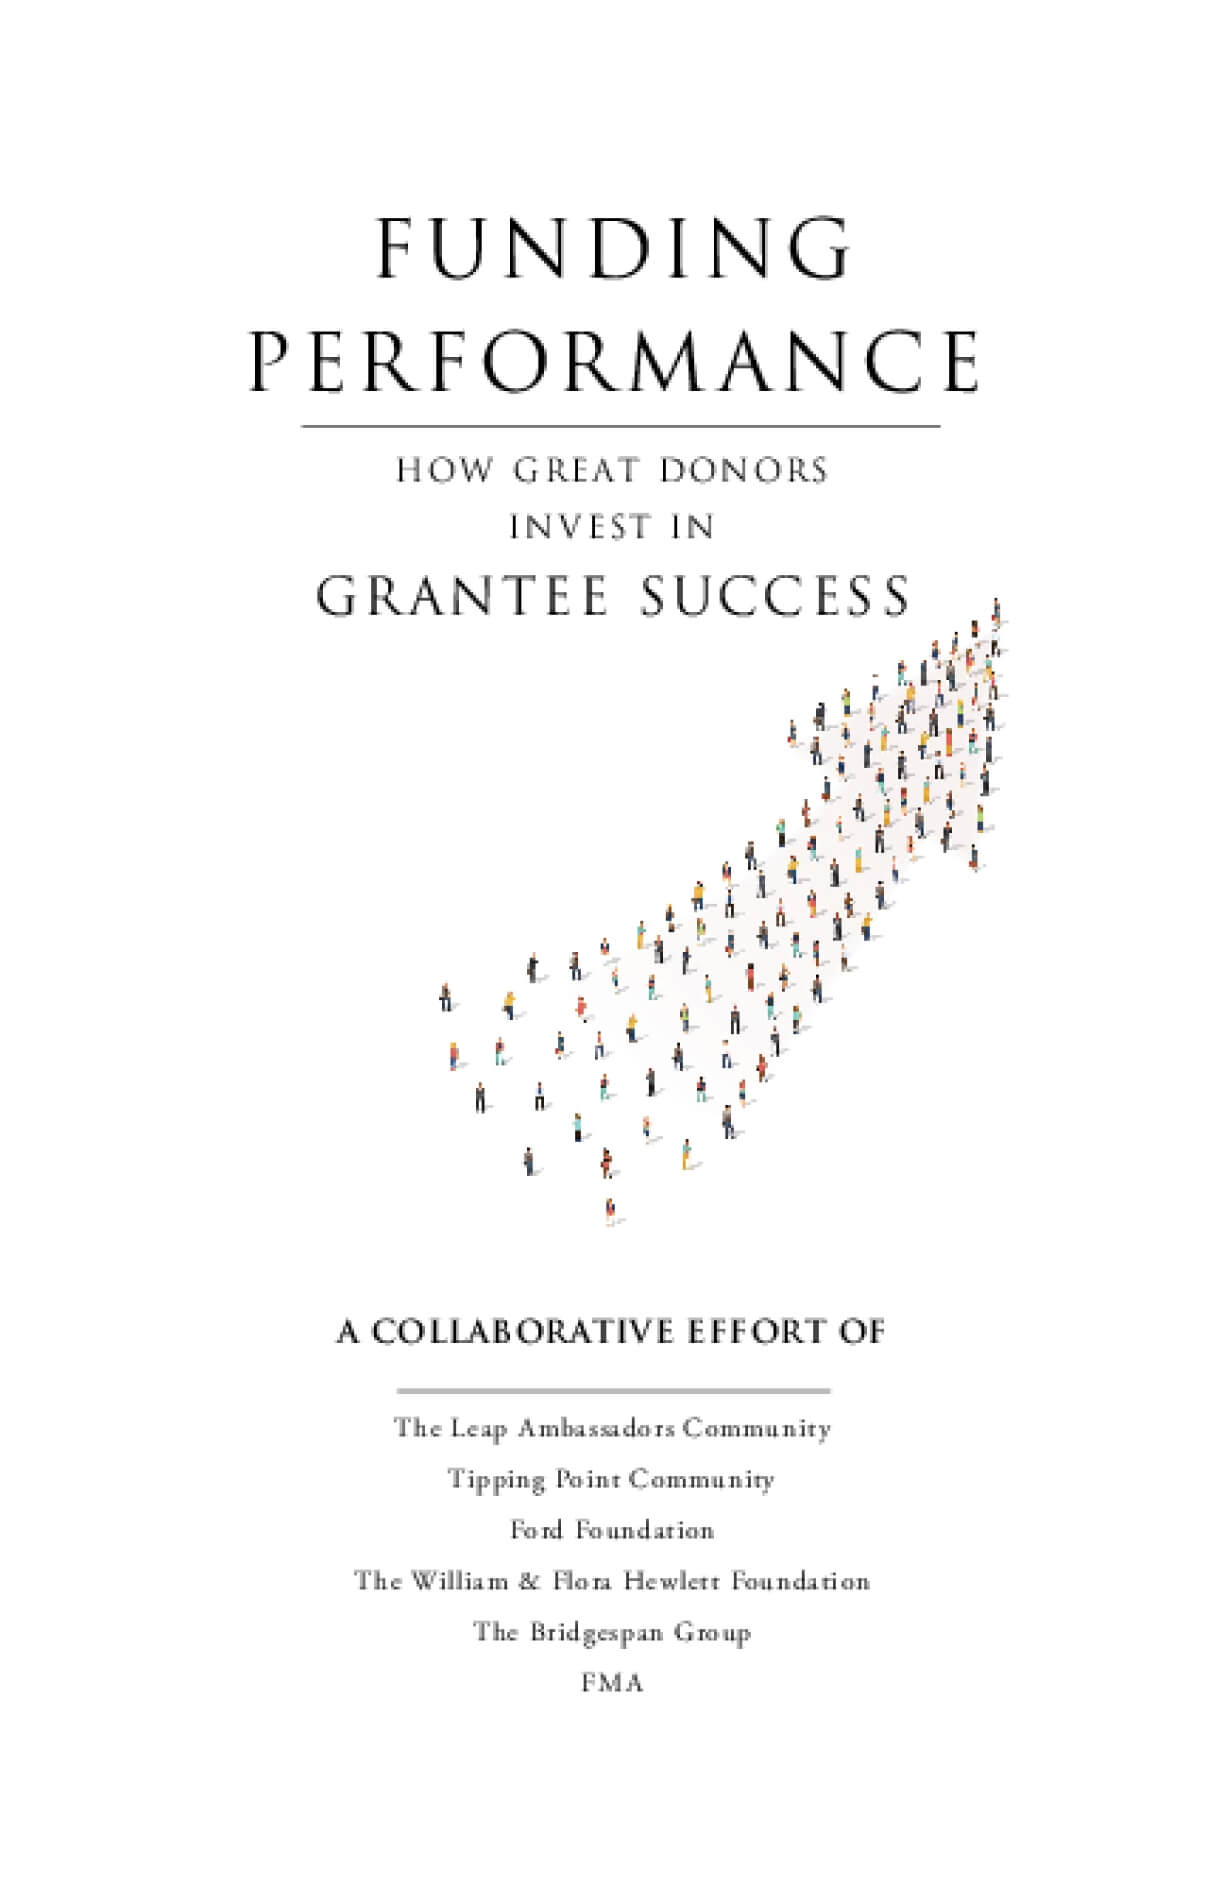 Funding Performance: How Great Donors Invest in Grantee Success